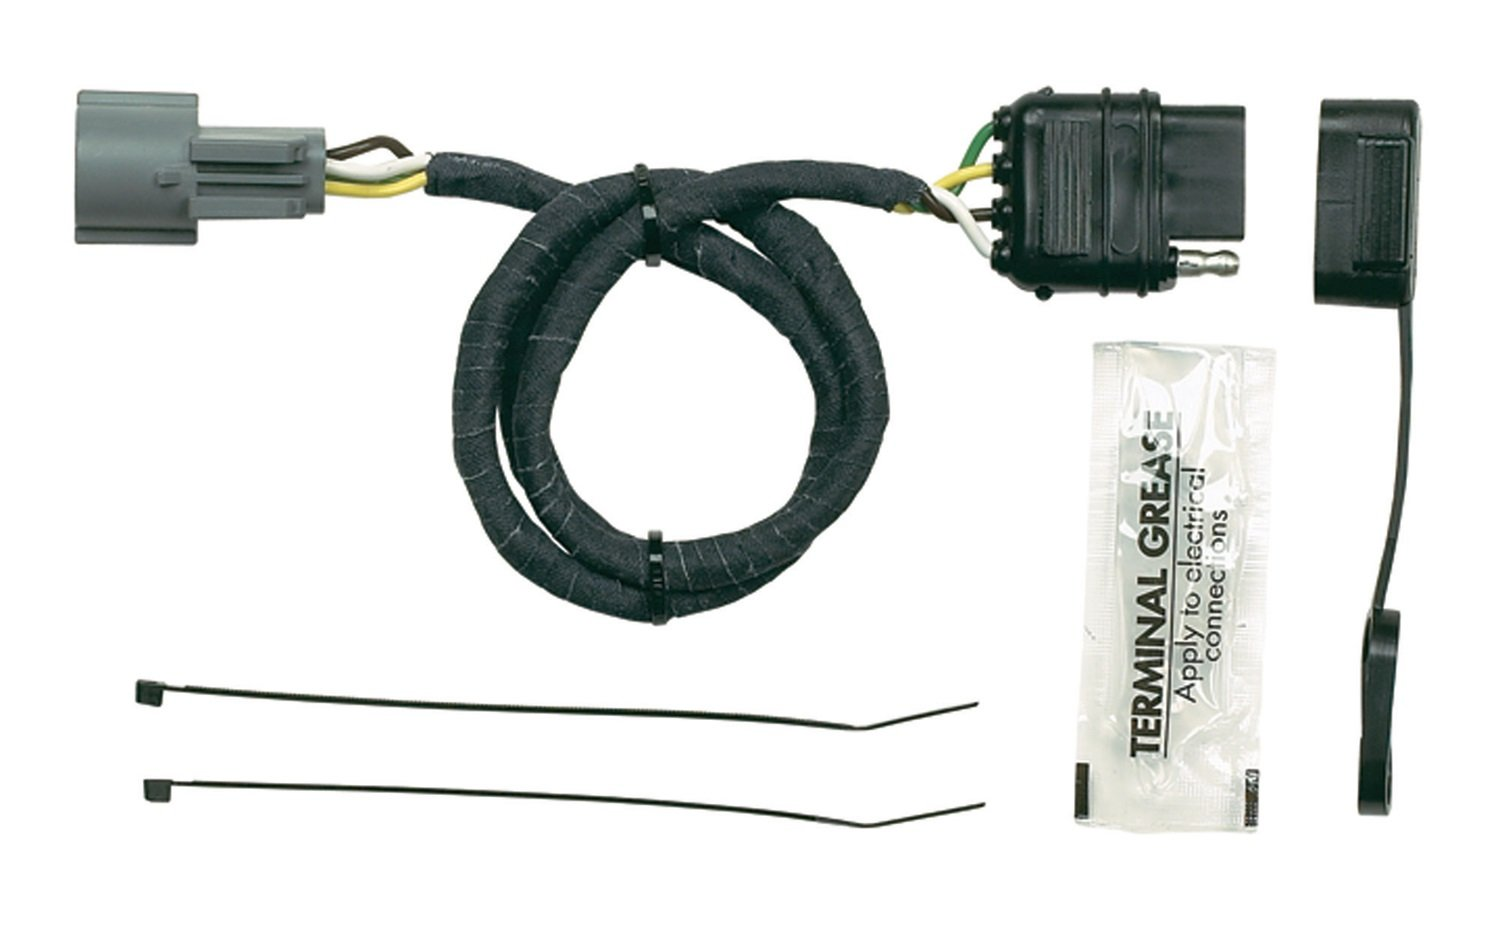 61jrmgZKFDL._SL1500_ amazon com hopkins 11140455 vehicle to trailer wiring kit automotive Trailer Light Wiring Kits at readyjetset.co